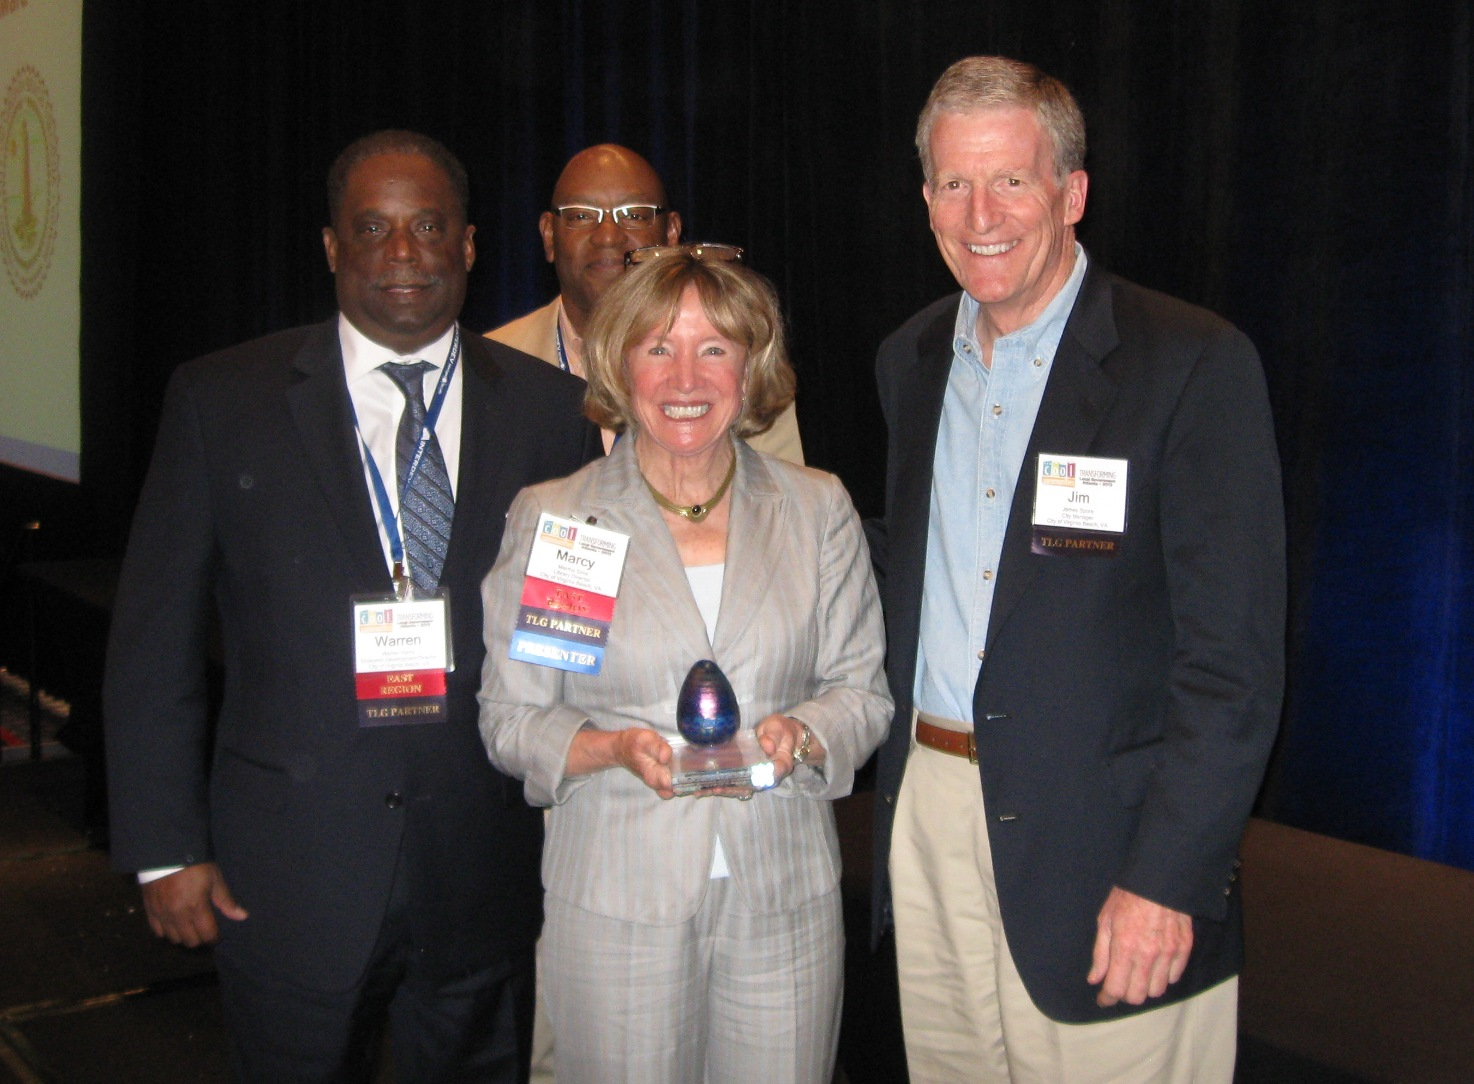 Warren Harris, Marcy Sims and City Manager Jim Spore accept award from Bill Horne